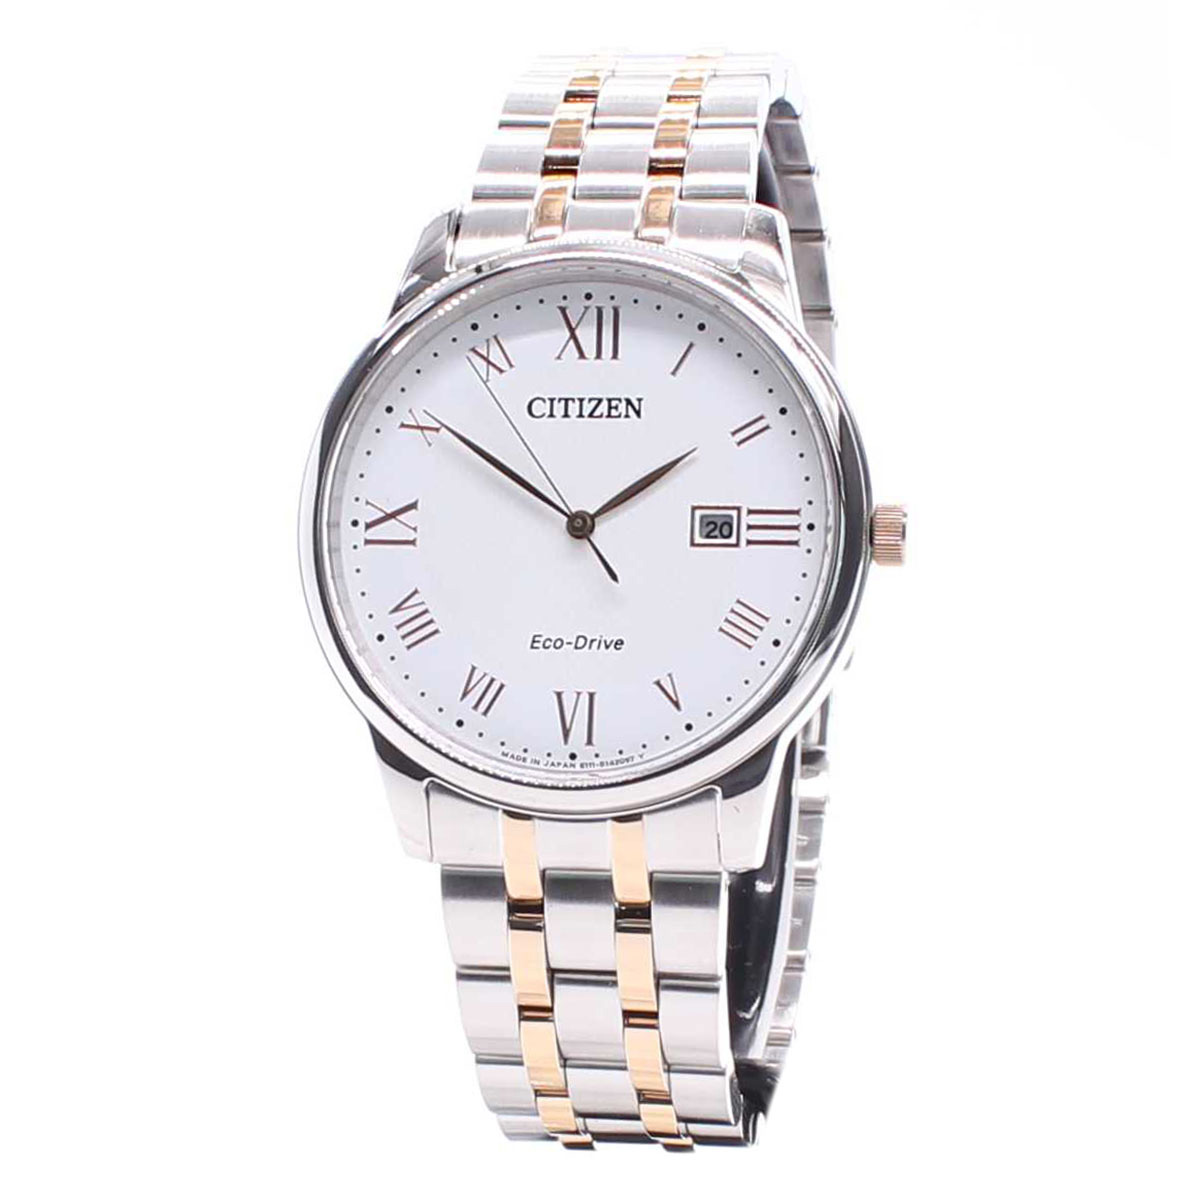 Citizen-ECO-DRIVE-Mens-Analog-Watch-Casual-Silver-Band-BM6970-52A